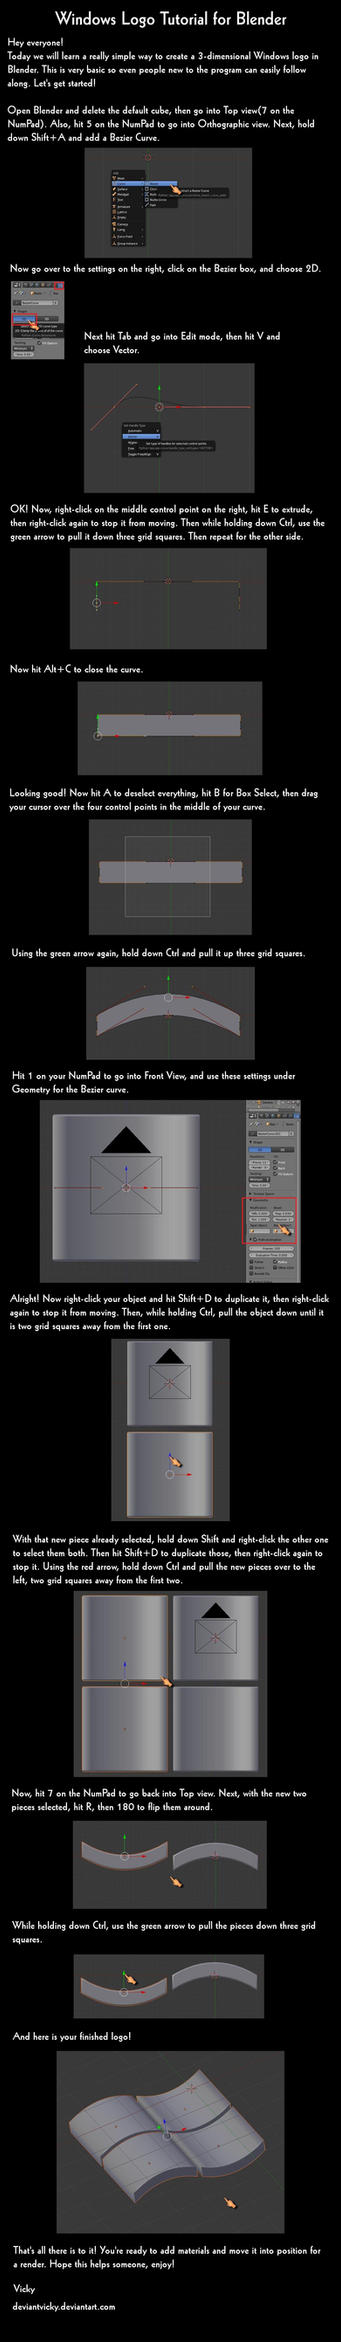 Windows Logo Tutorial by VickyM72